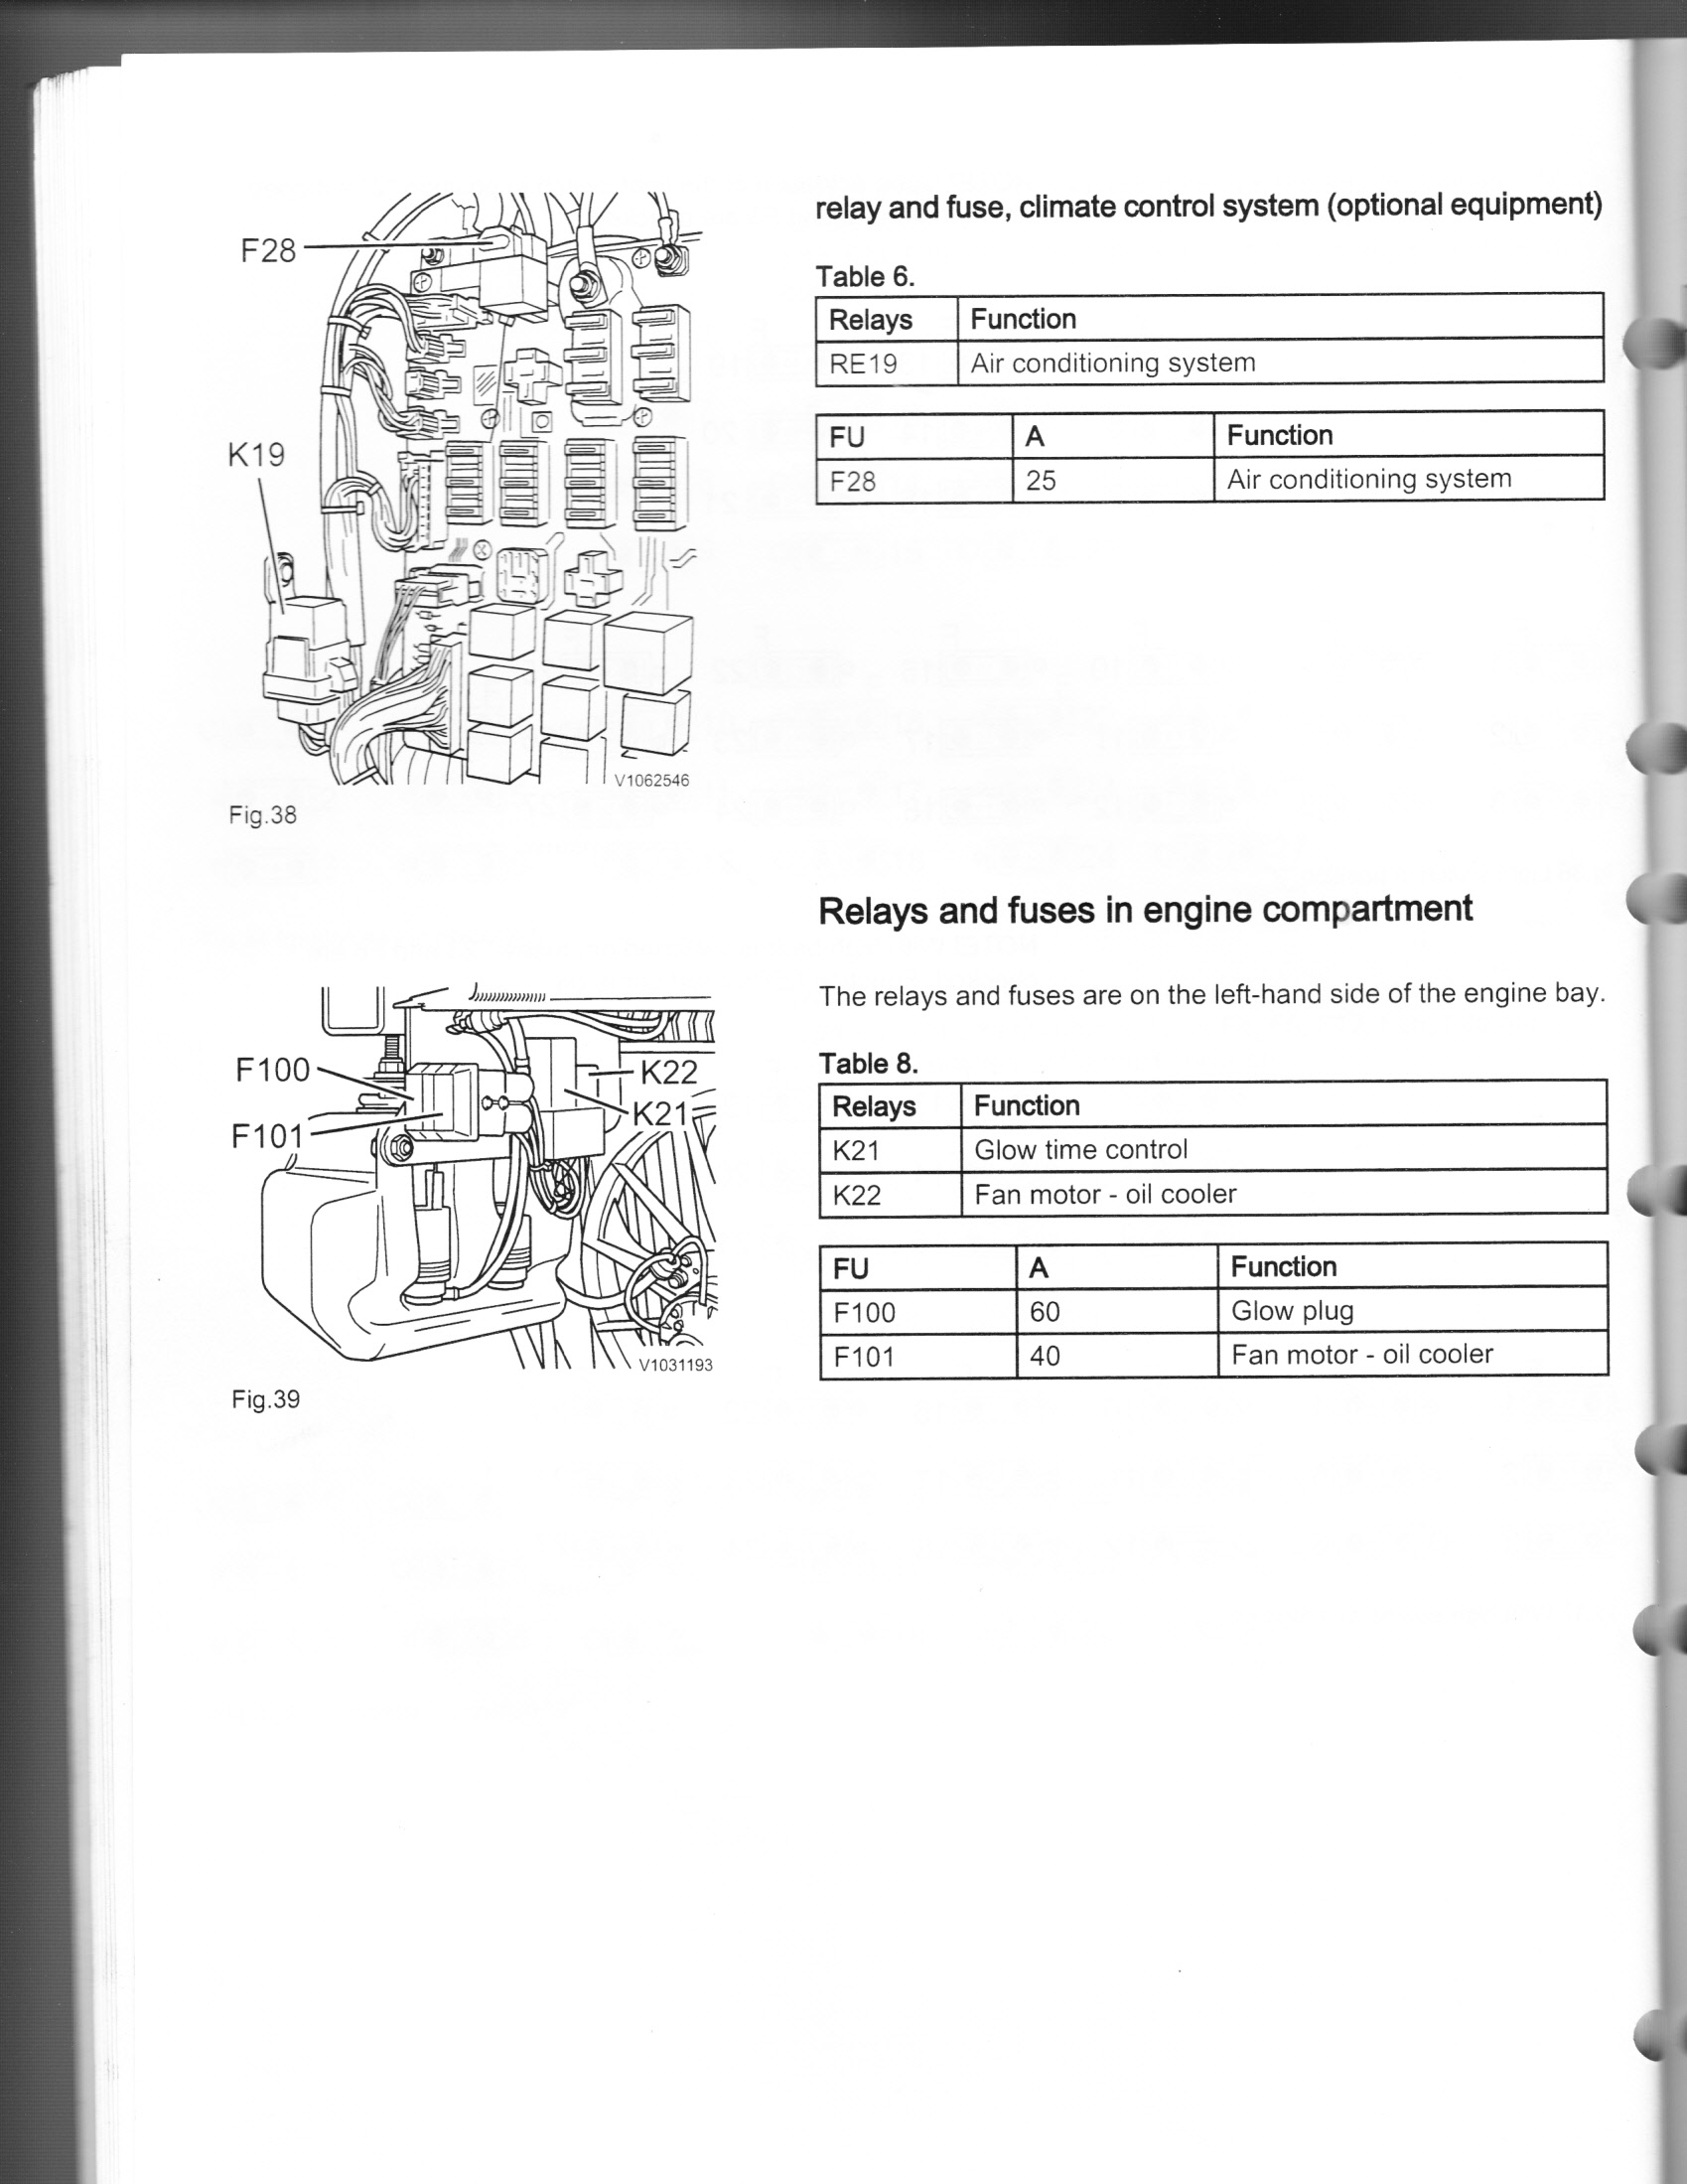 loader wiring diagram i have a volvo l20b loader with wiring issues i am looking ... volvo l20 loader wiring diagram #11